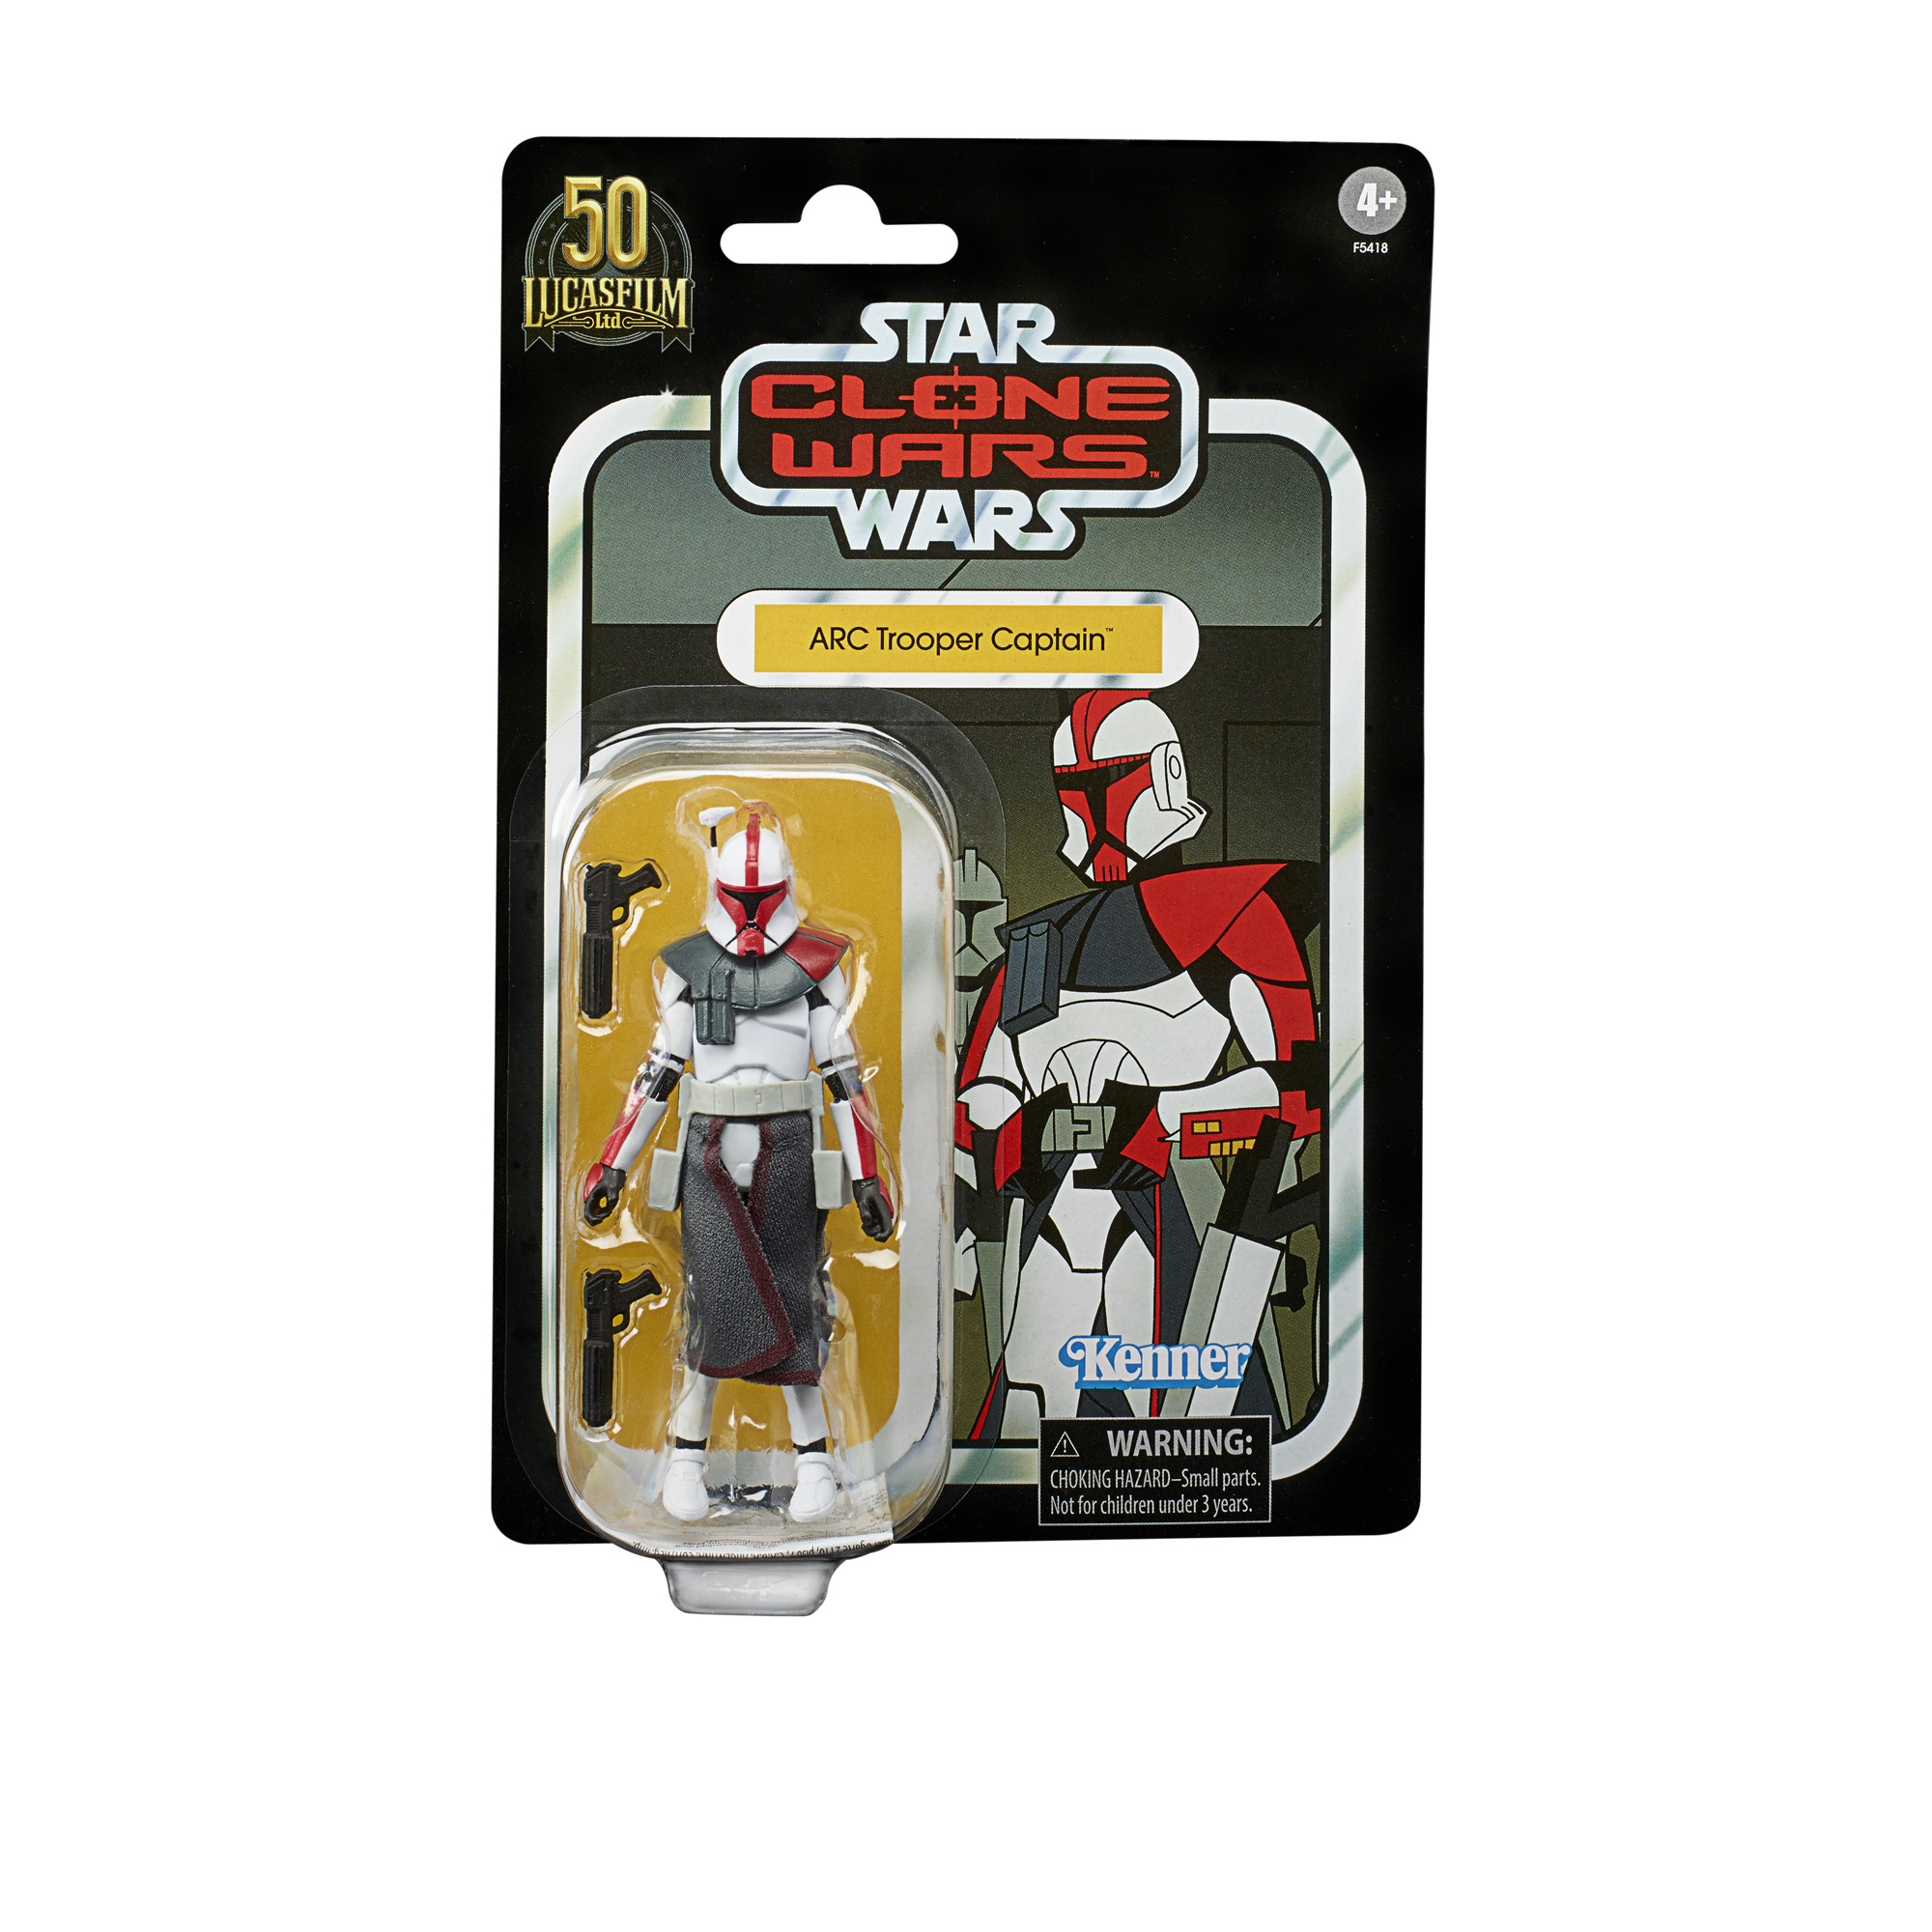 Star Wars The Vintage Collection Star Wars: Clone Wars ARC Trooper Captain 3 3/4-Inch Action Figure画像